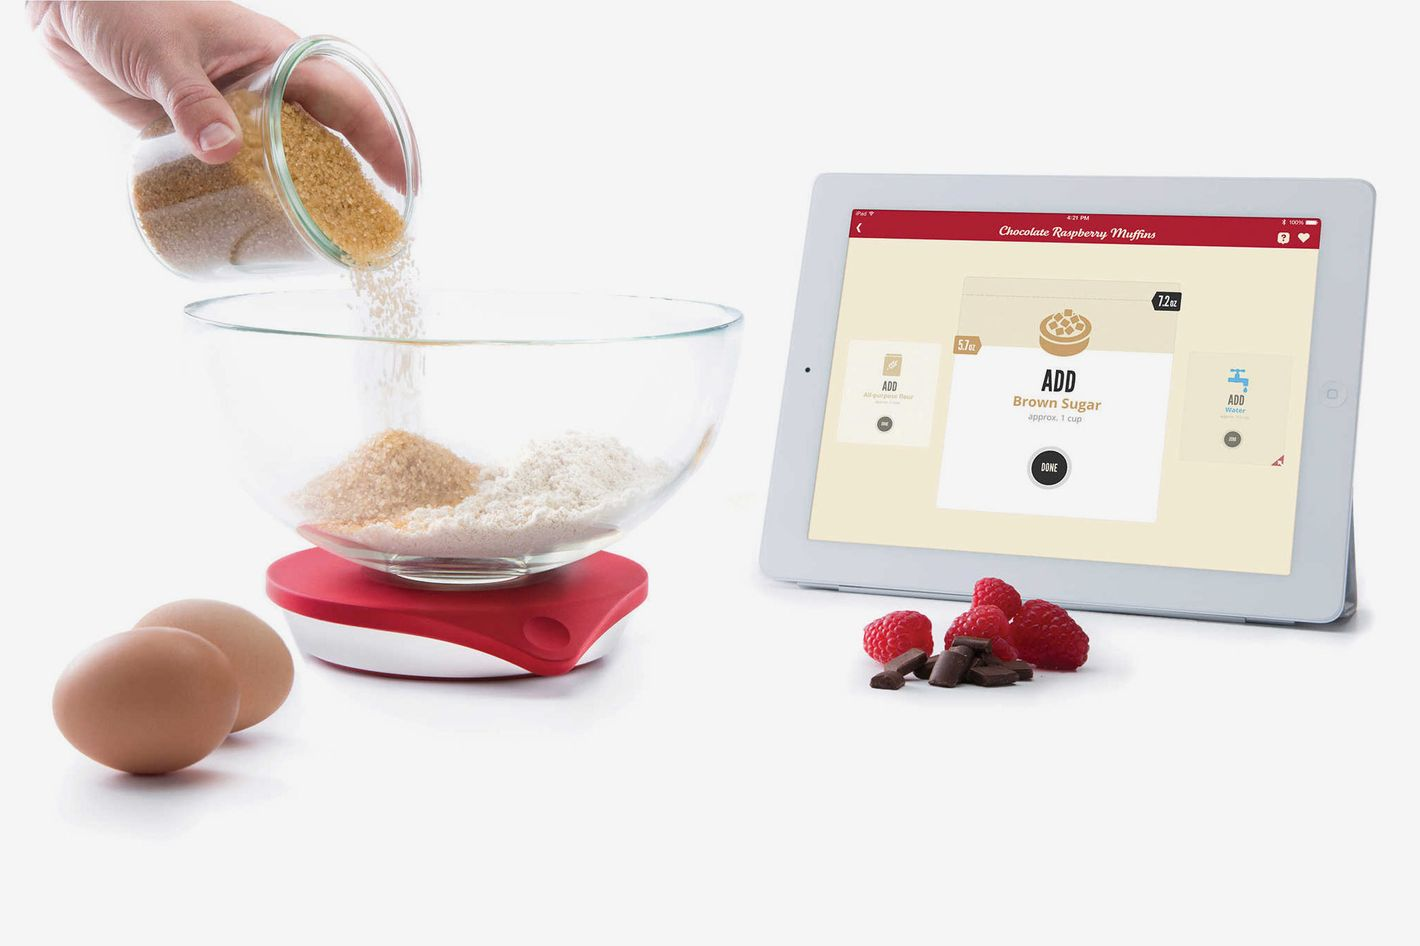 Drop Scale Smart Kitchen Scale and Recipe App